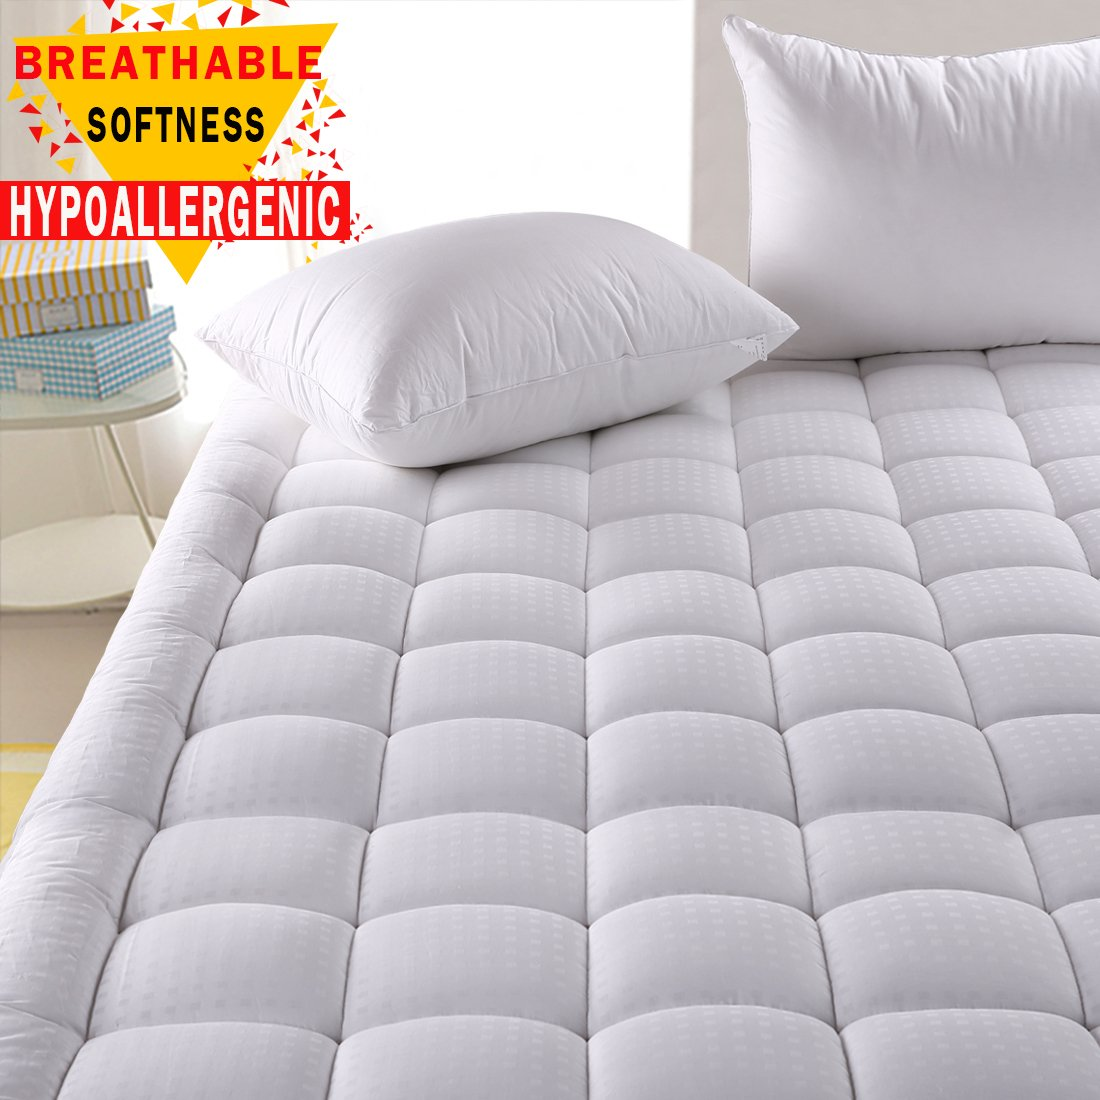 Hypoallergenic Quilted Mattress Pad Cover with 300TC 100% Cotton Down Alternative Filled Mattress Topper